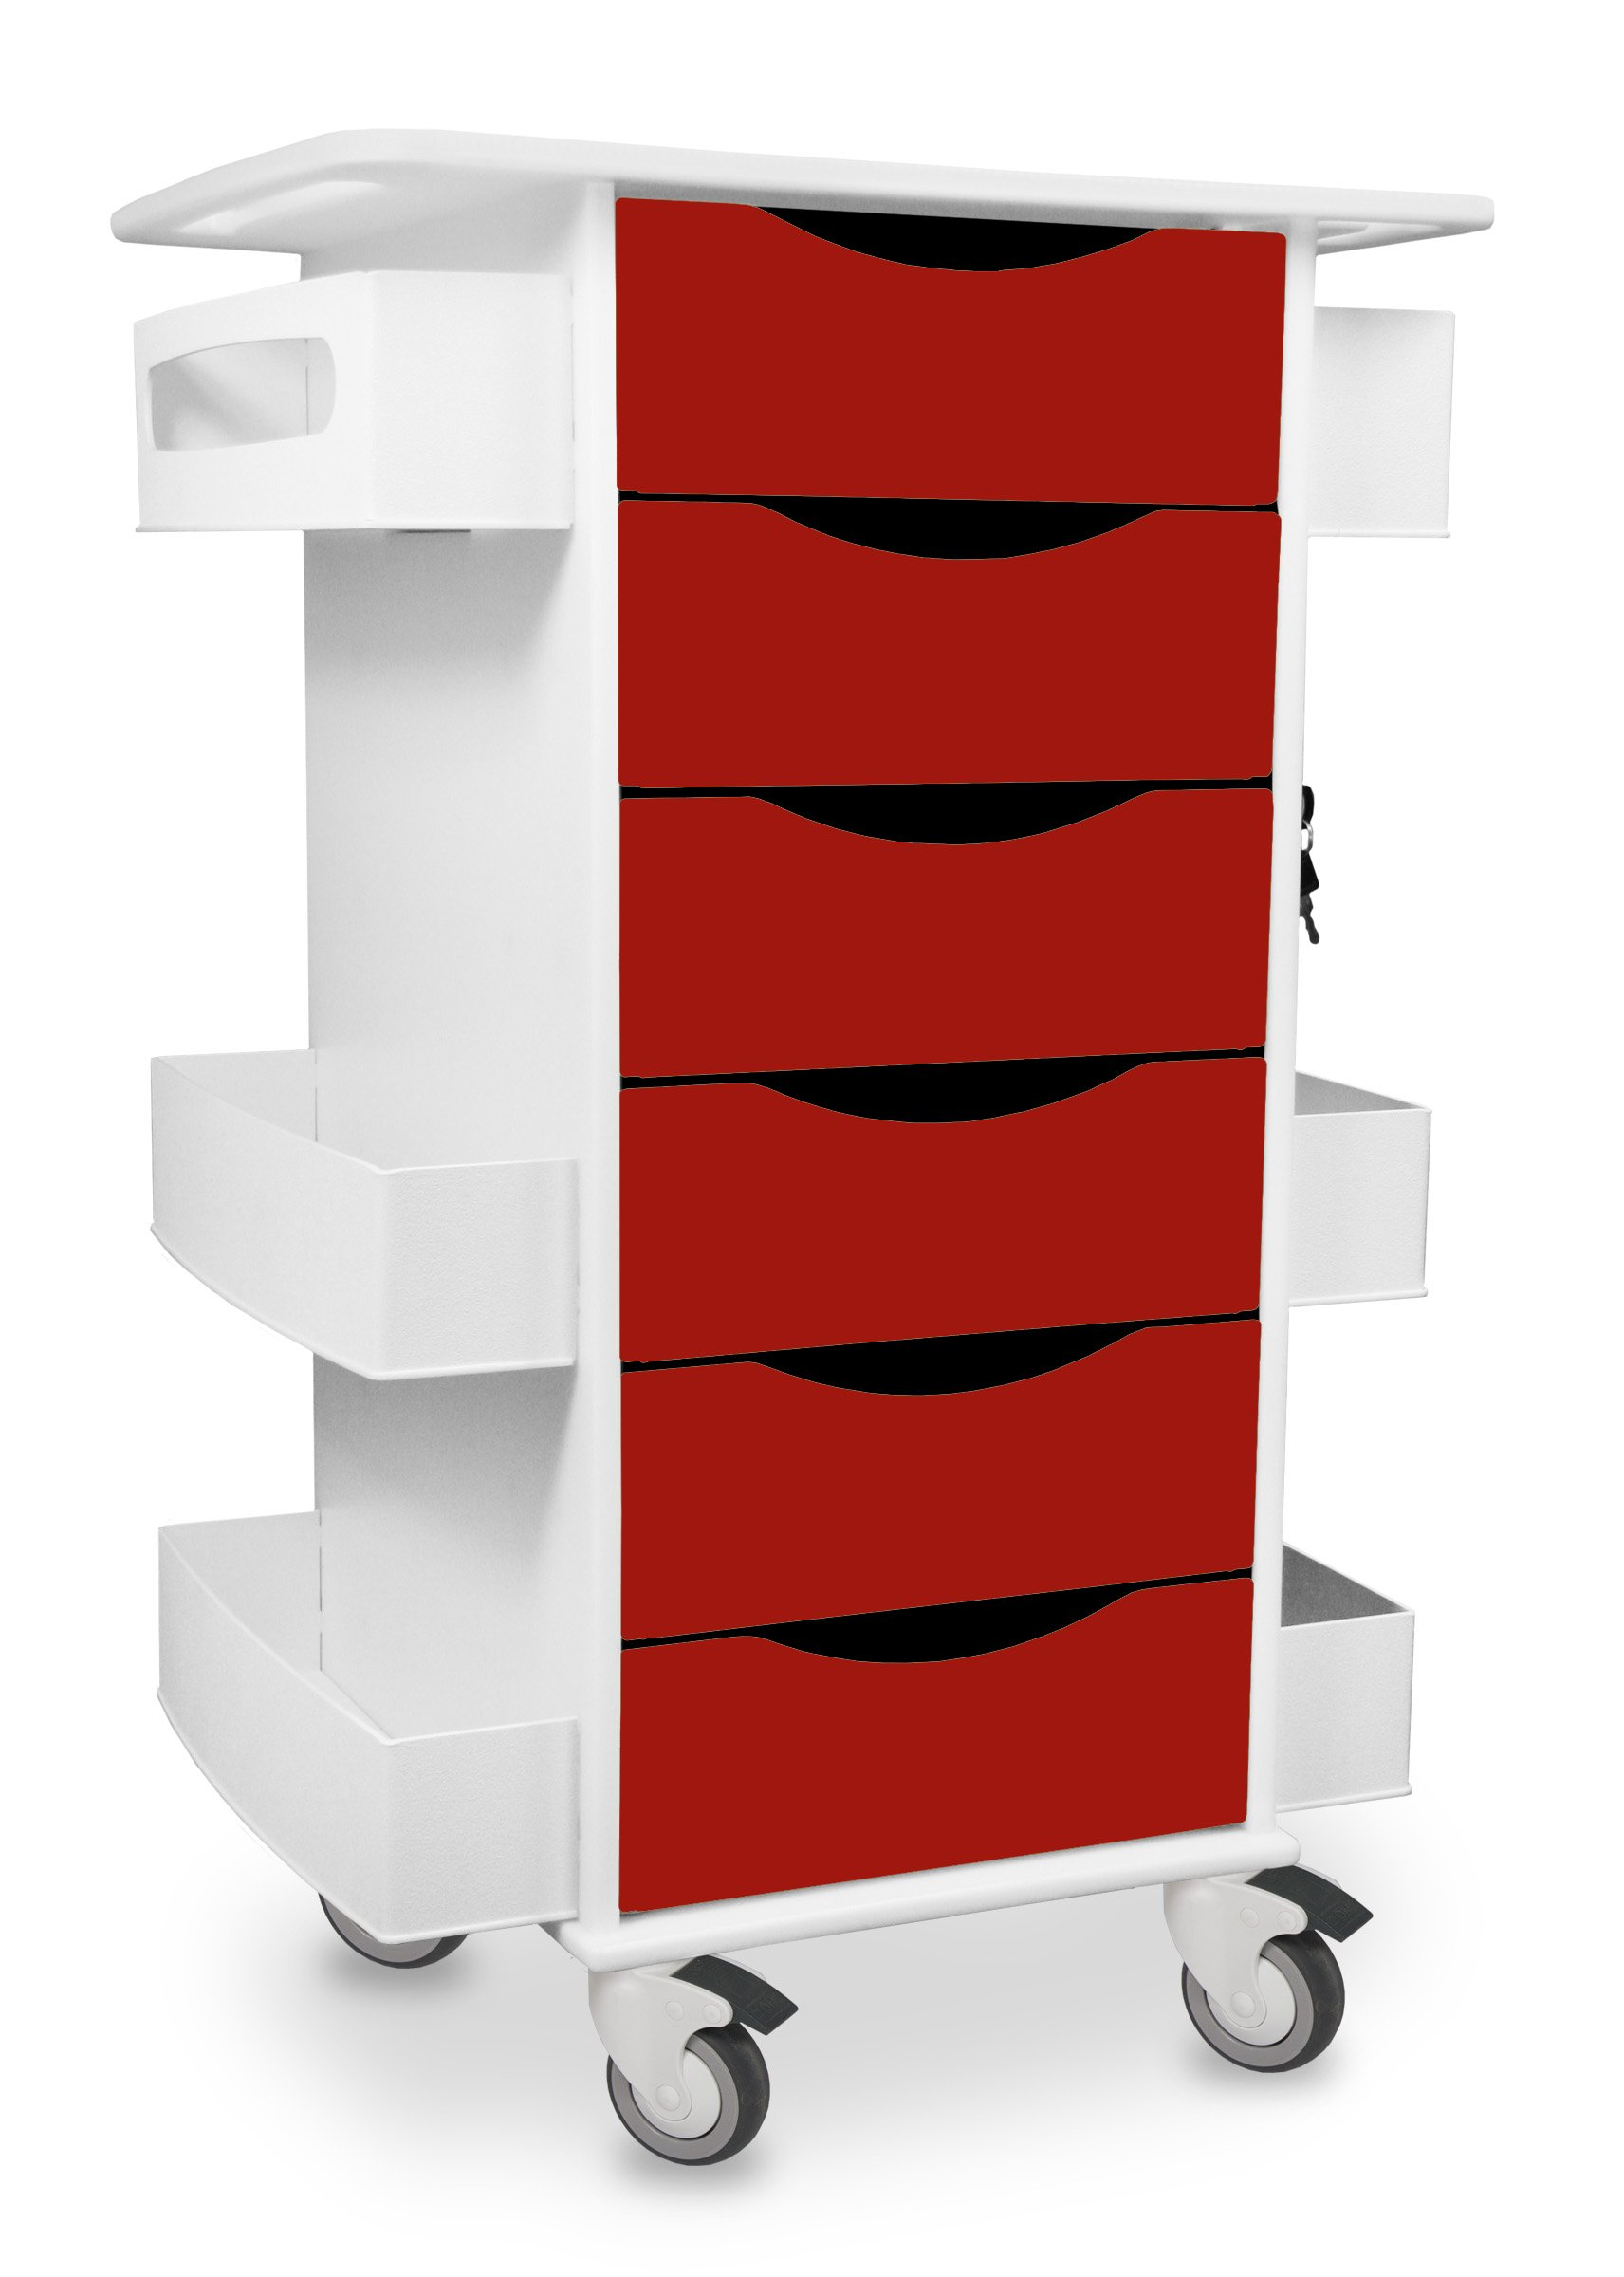 TrippNT 51379 High Density Polyethylene/Acrylonitrile Butadiene Styrene/PETG Core Medical Lab Cart with 6 Drawers, Cherry Red by TrippNT (Image #1)